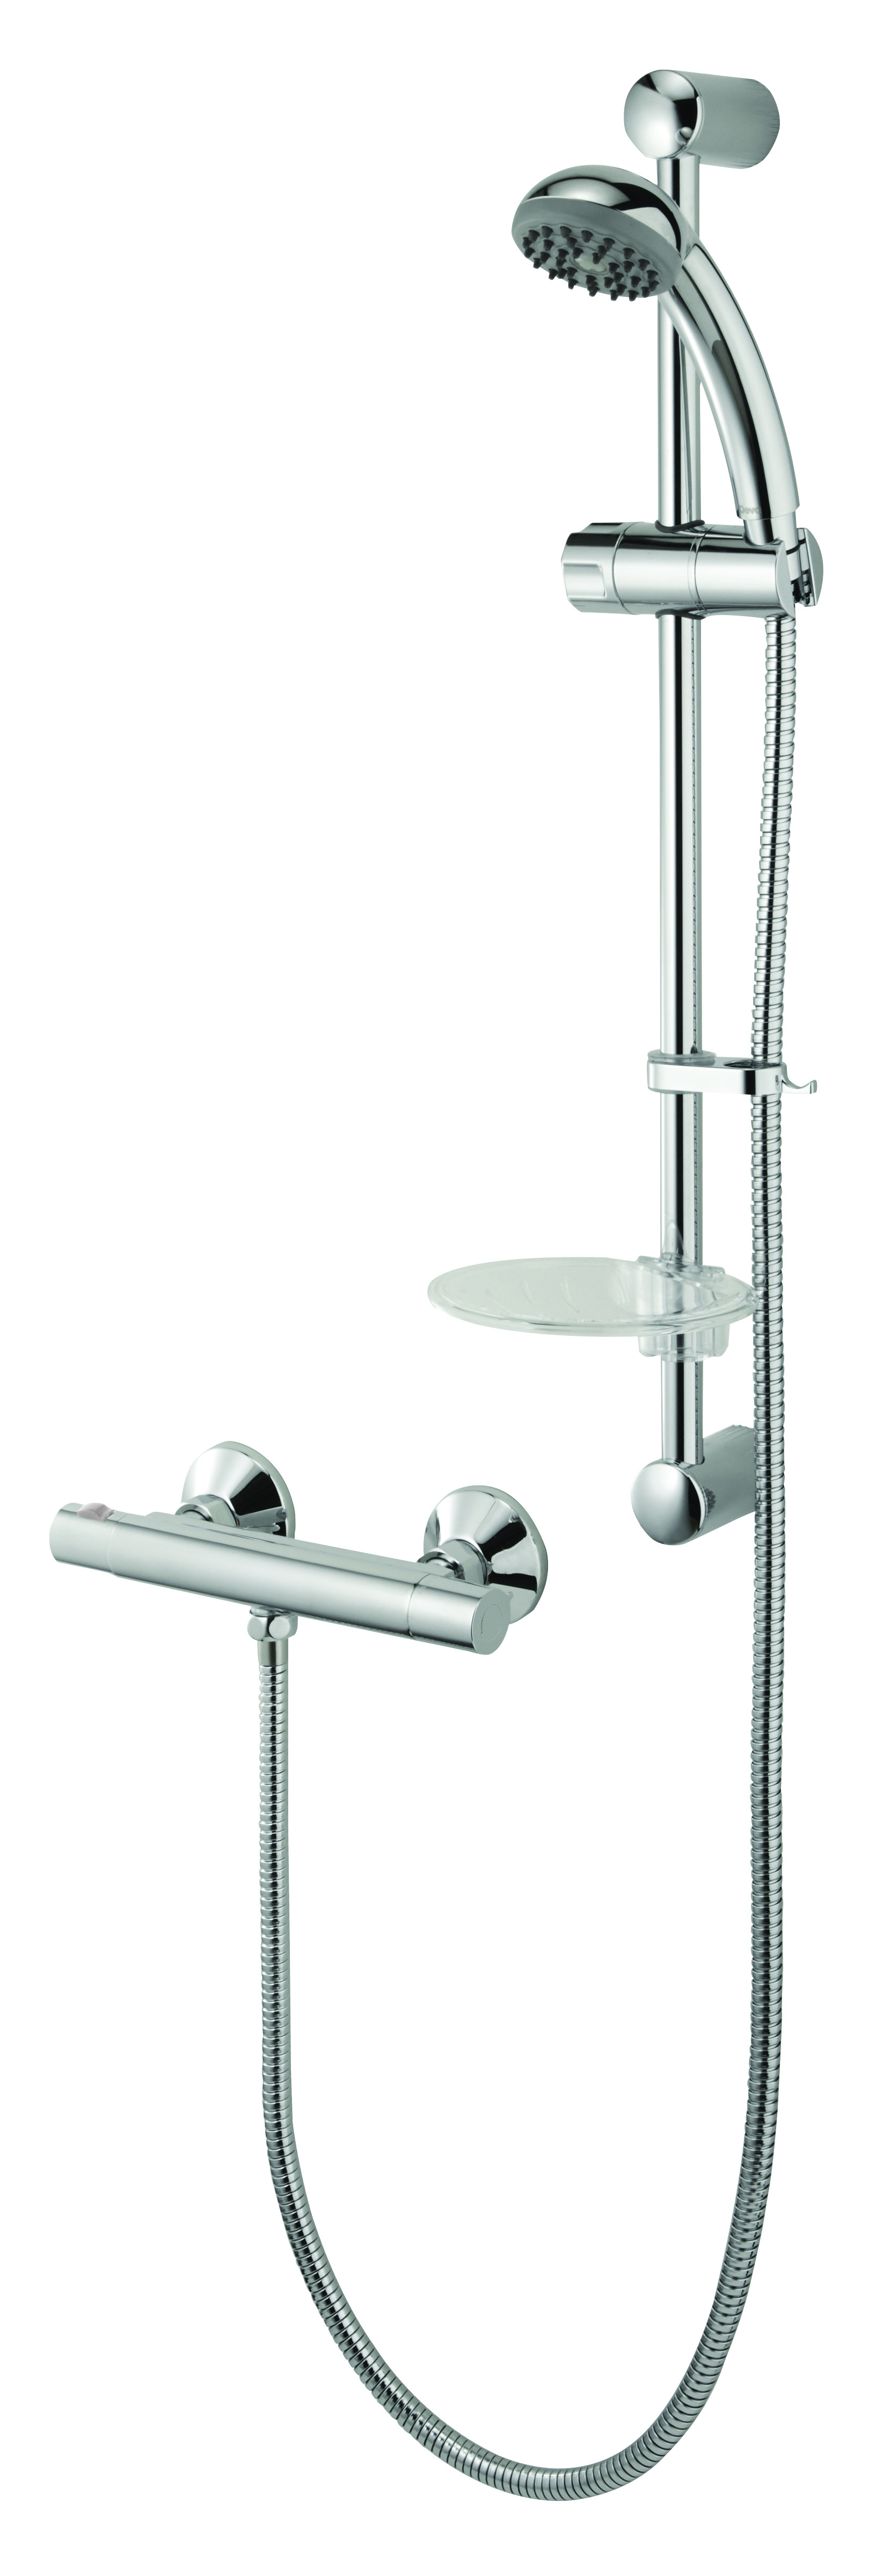 Kestrel Cooltouch Thermo Bar Shower Inc Slide Rail Kit